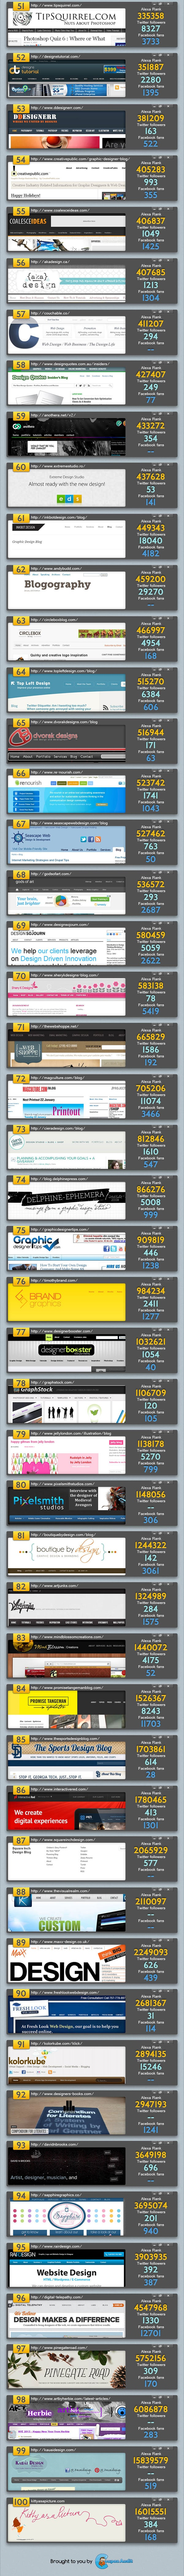 Top 100 Web Design Blogs for 2013 [Infographic]